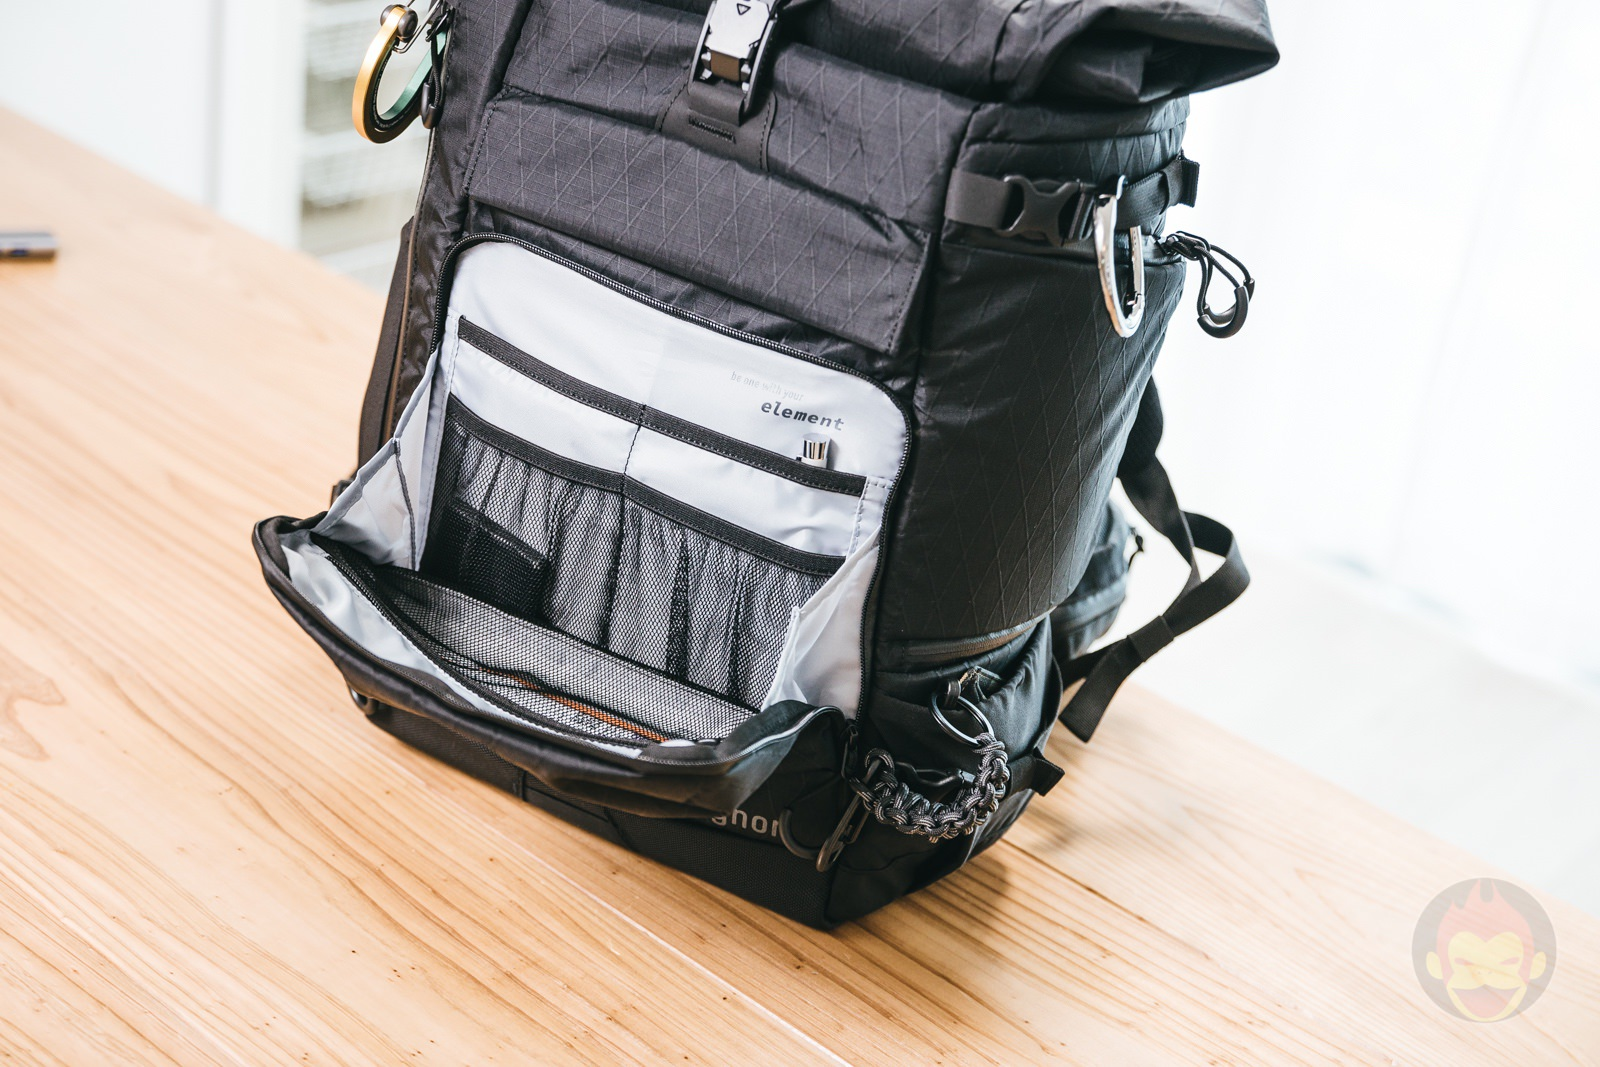 Compagnon element bacpack review 03